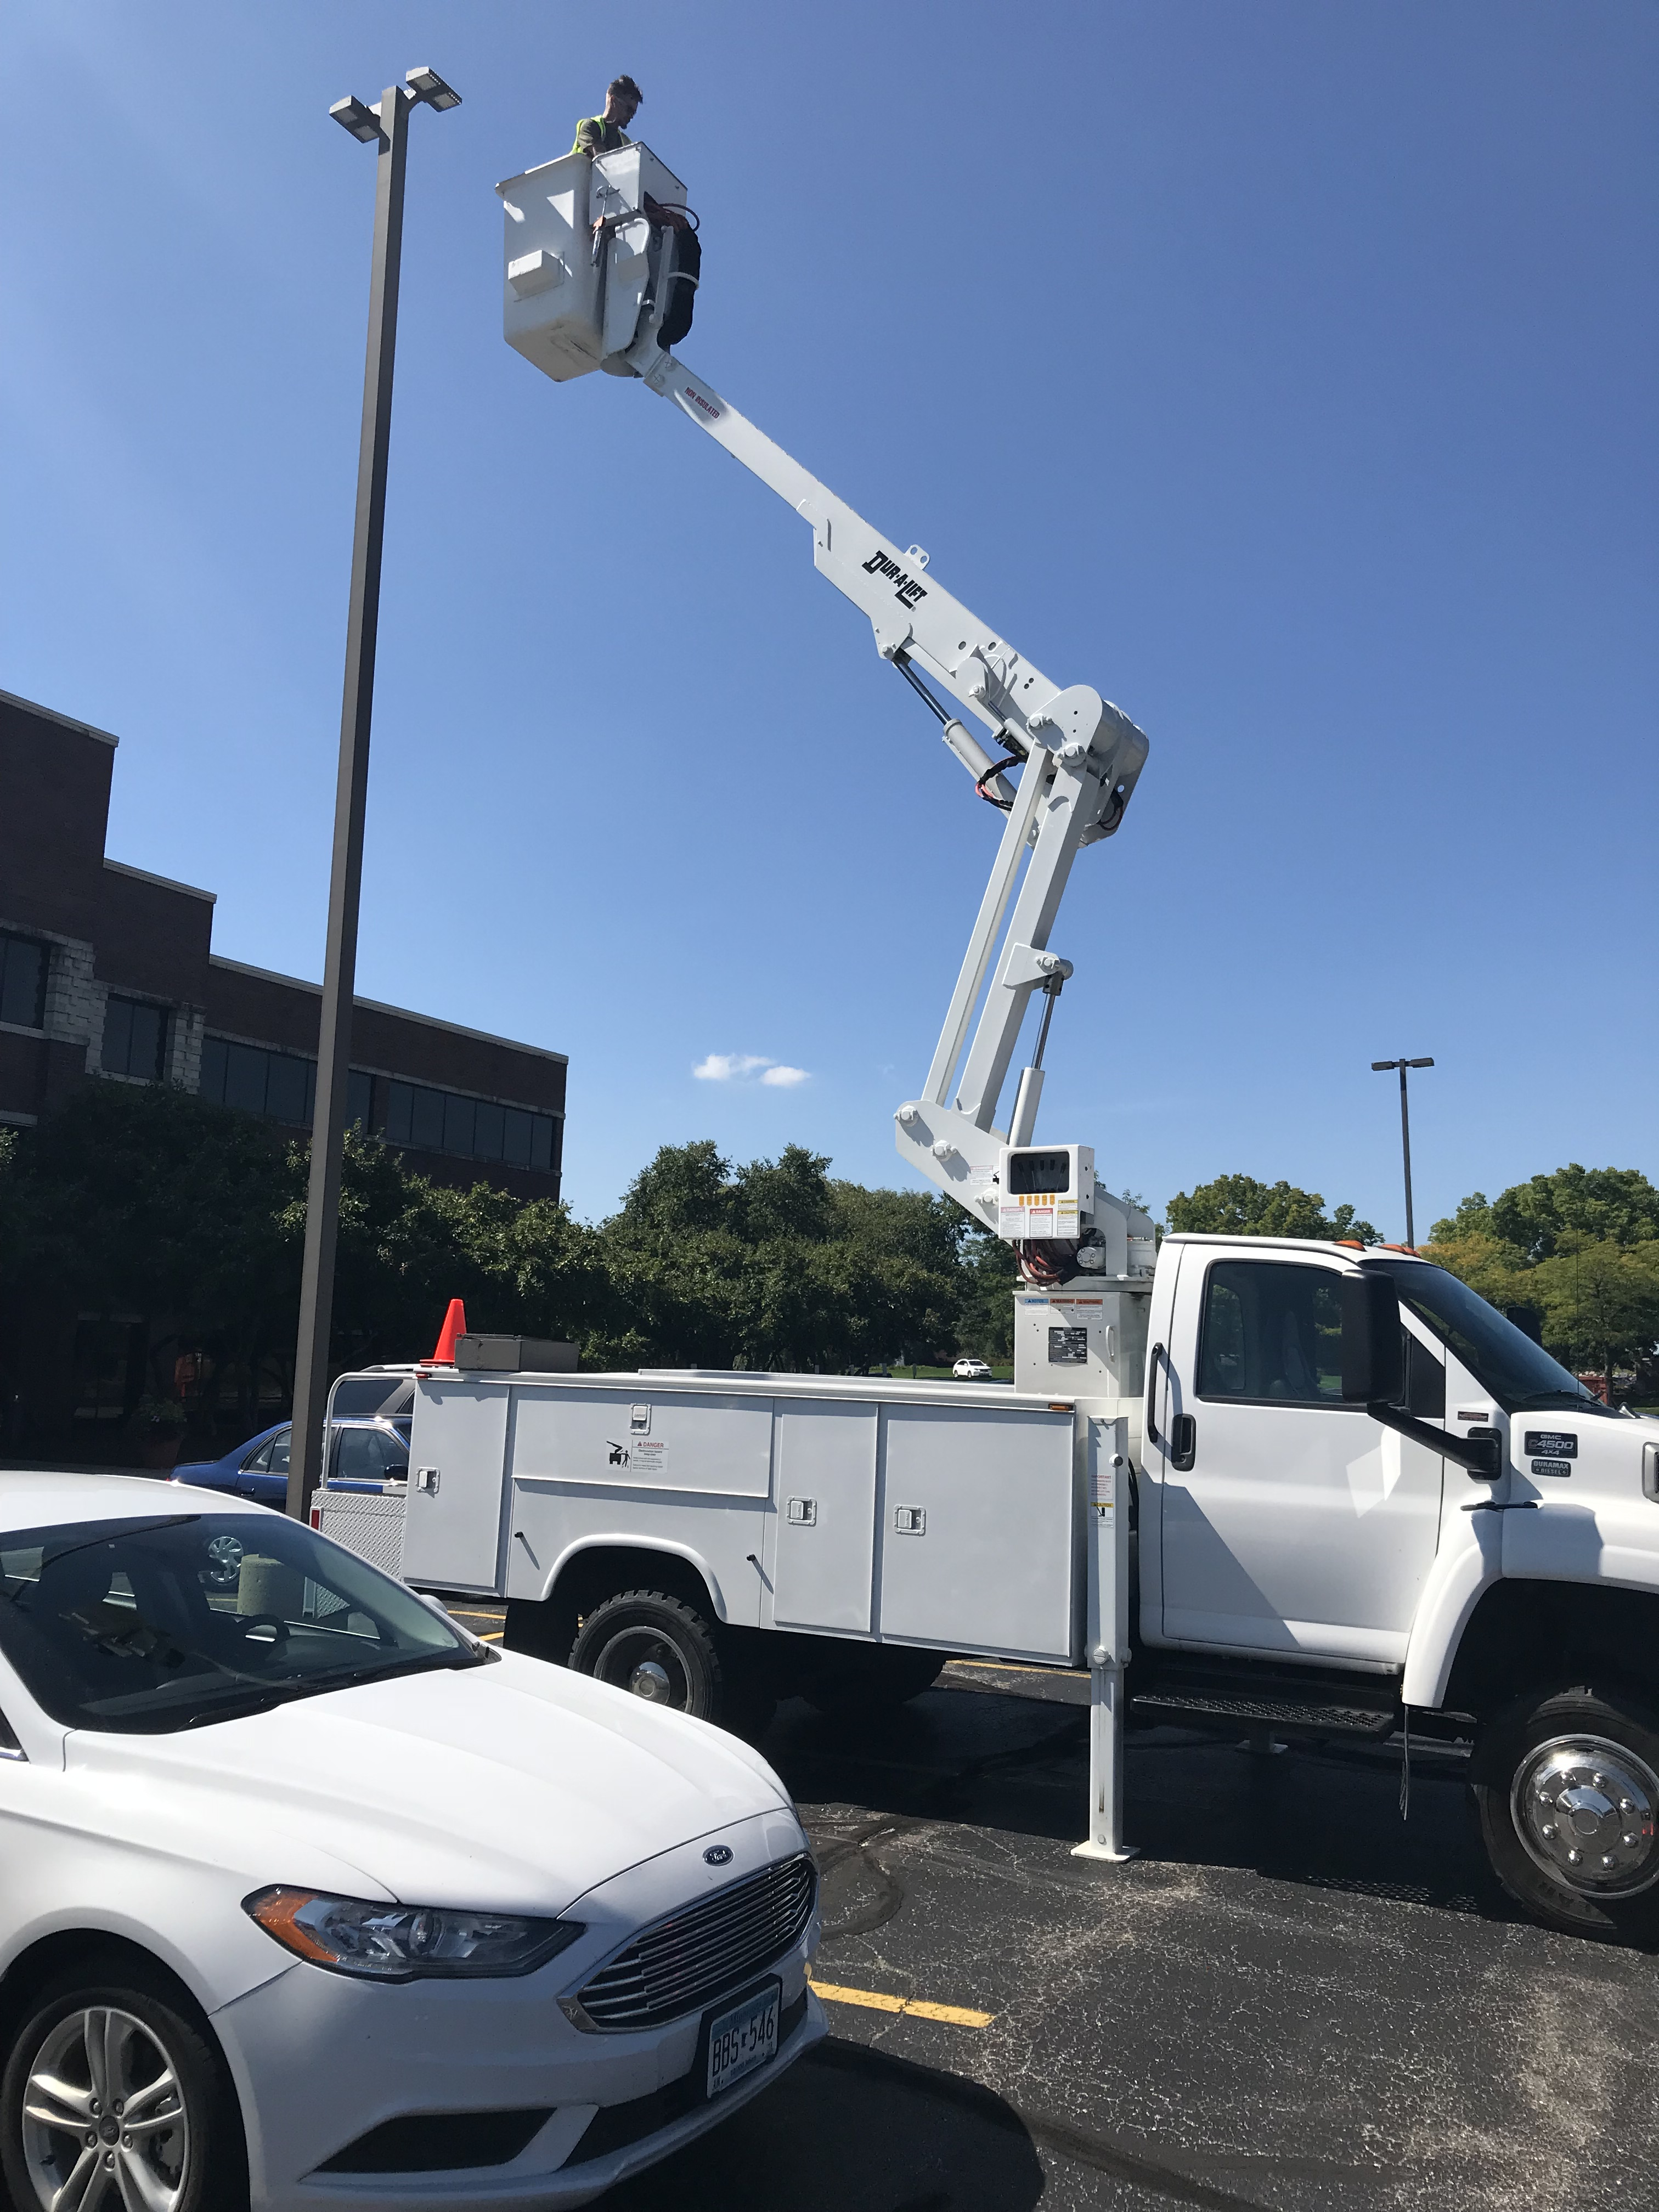 400 watt parking lot lights to LED